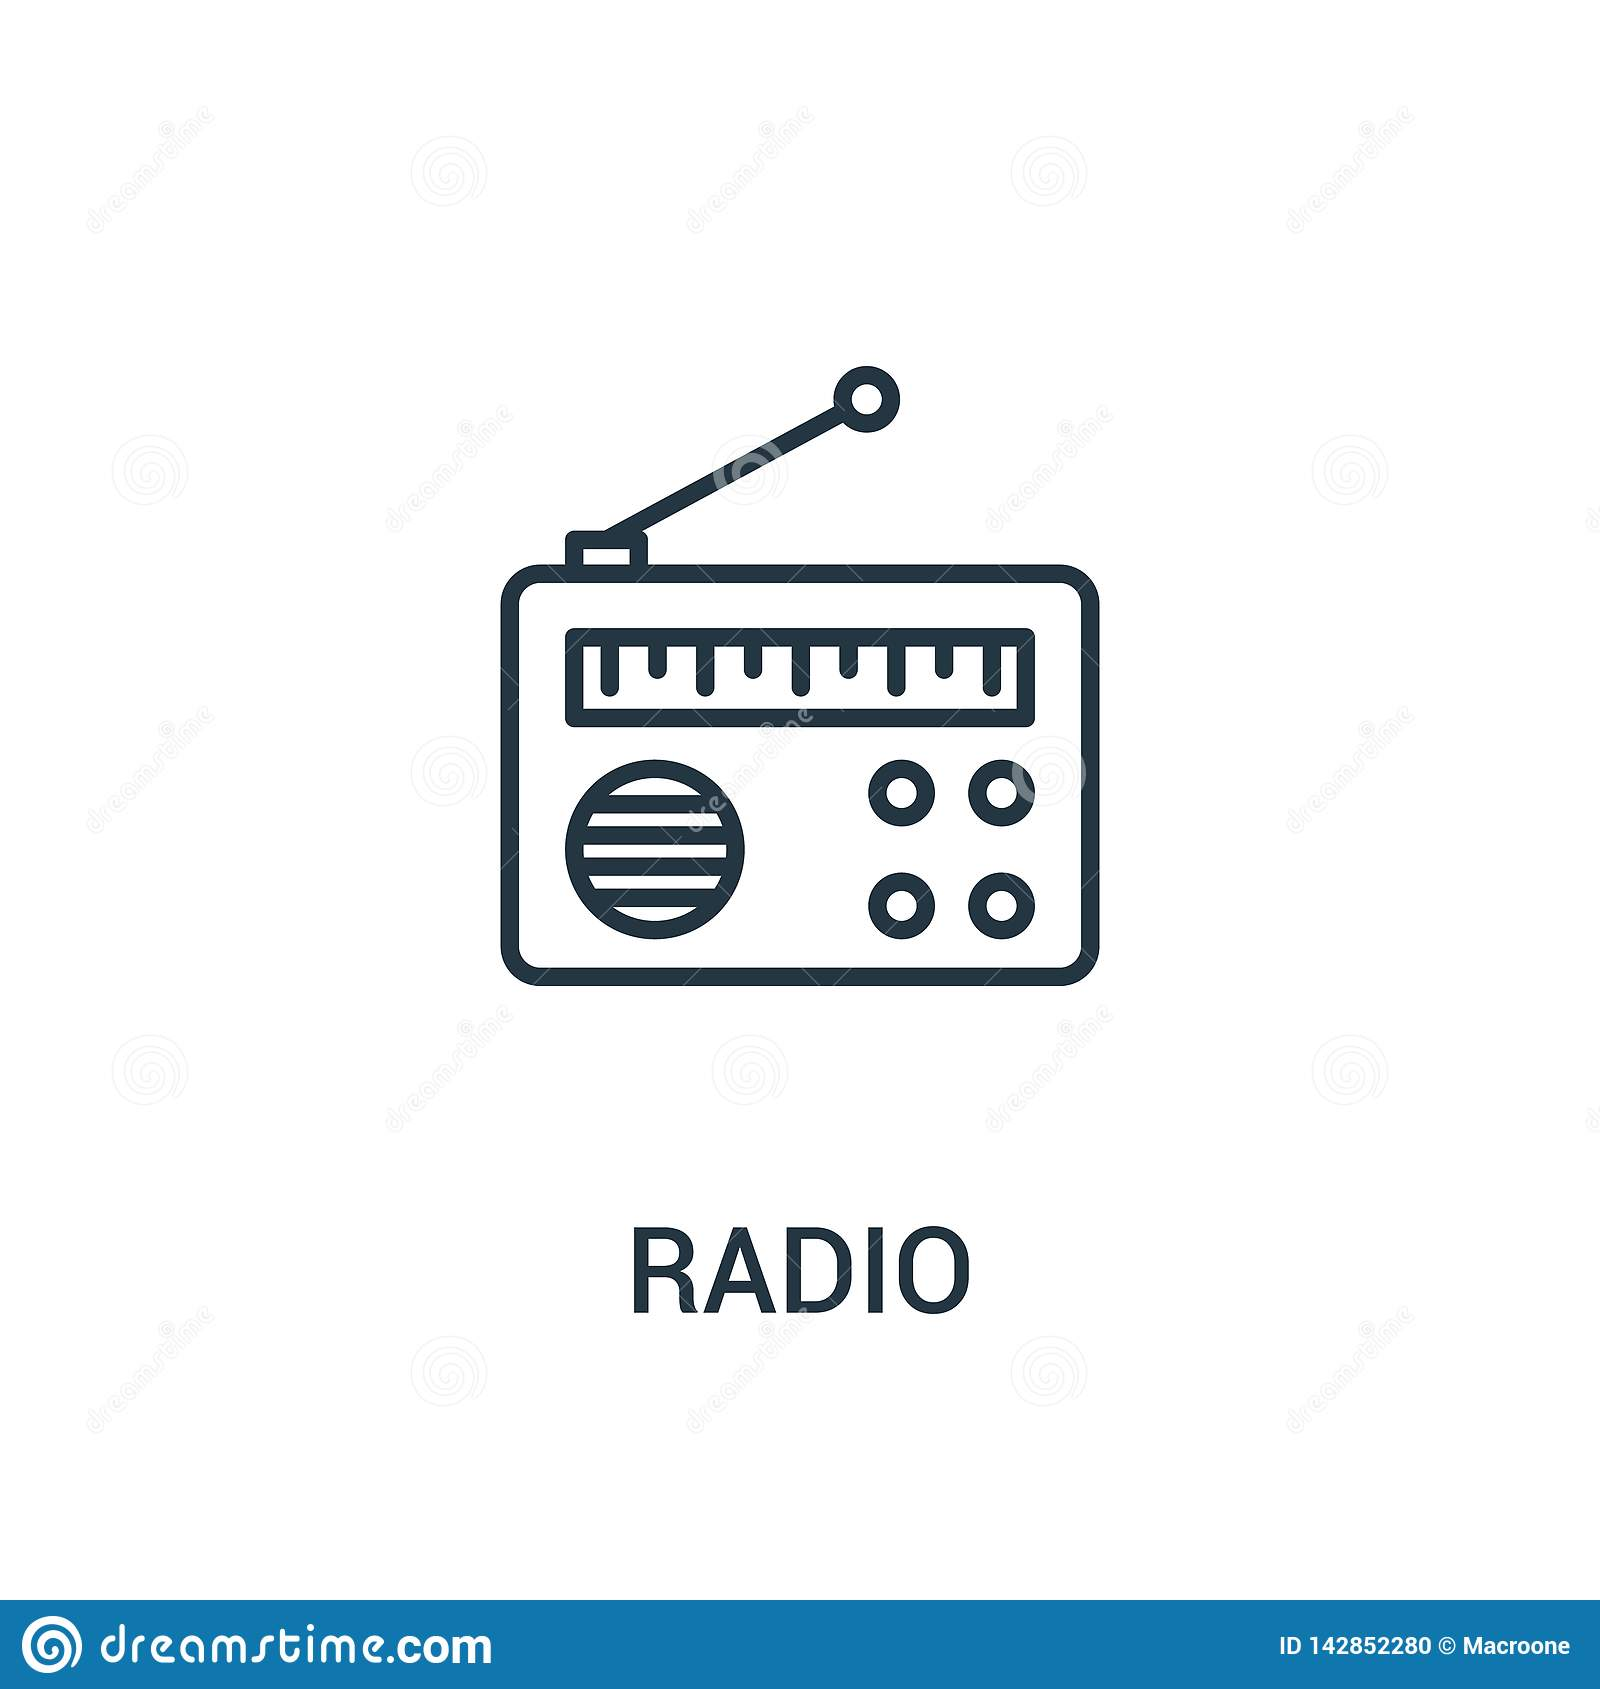 radio icon vector from ads collection. Thin line radio outline icon vector illustration. Linear symbol for use on web and mobile